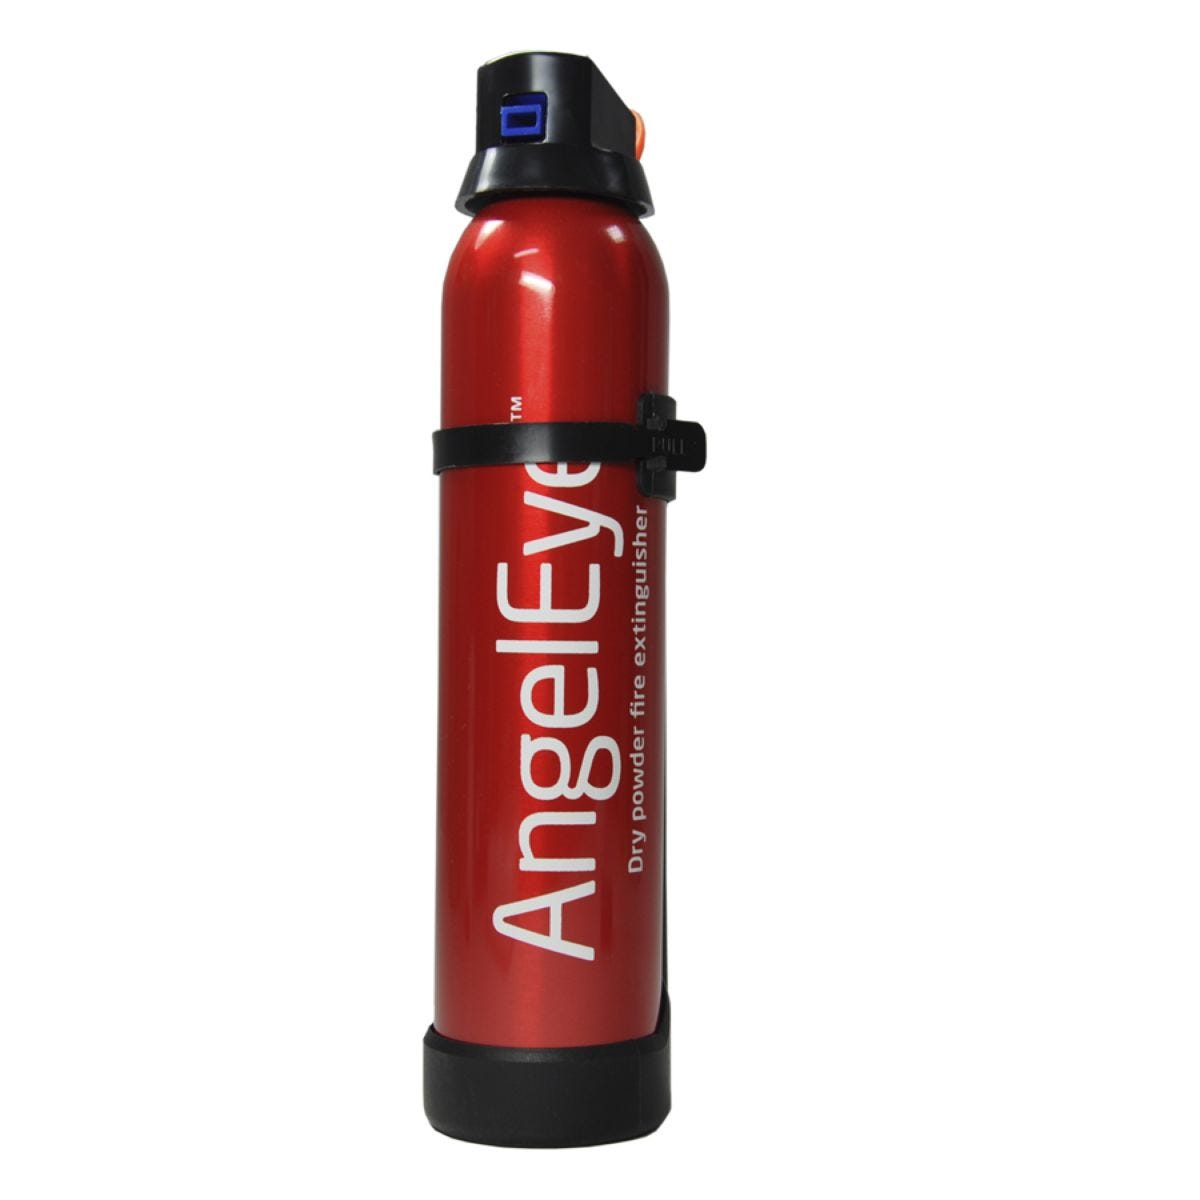 AngelEye Dry Powder Fire Extinguisher 600g